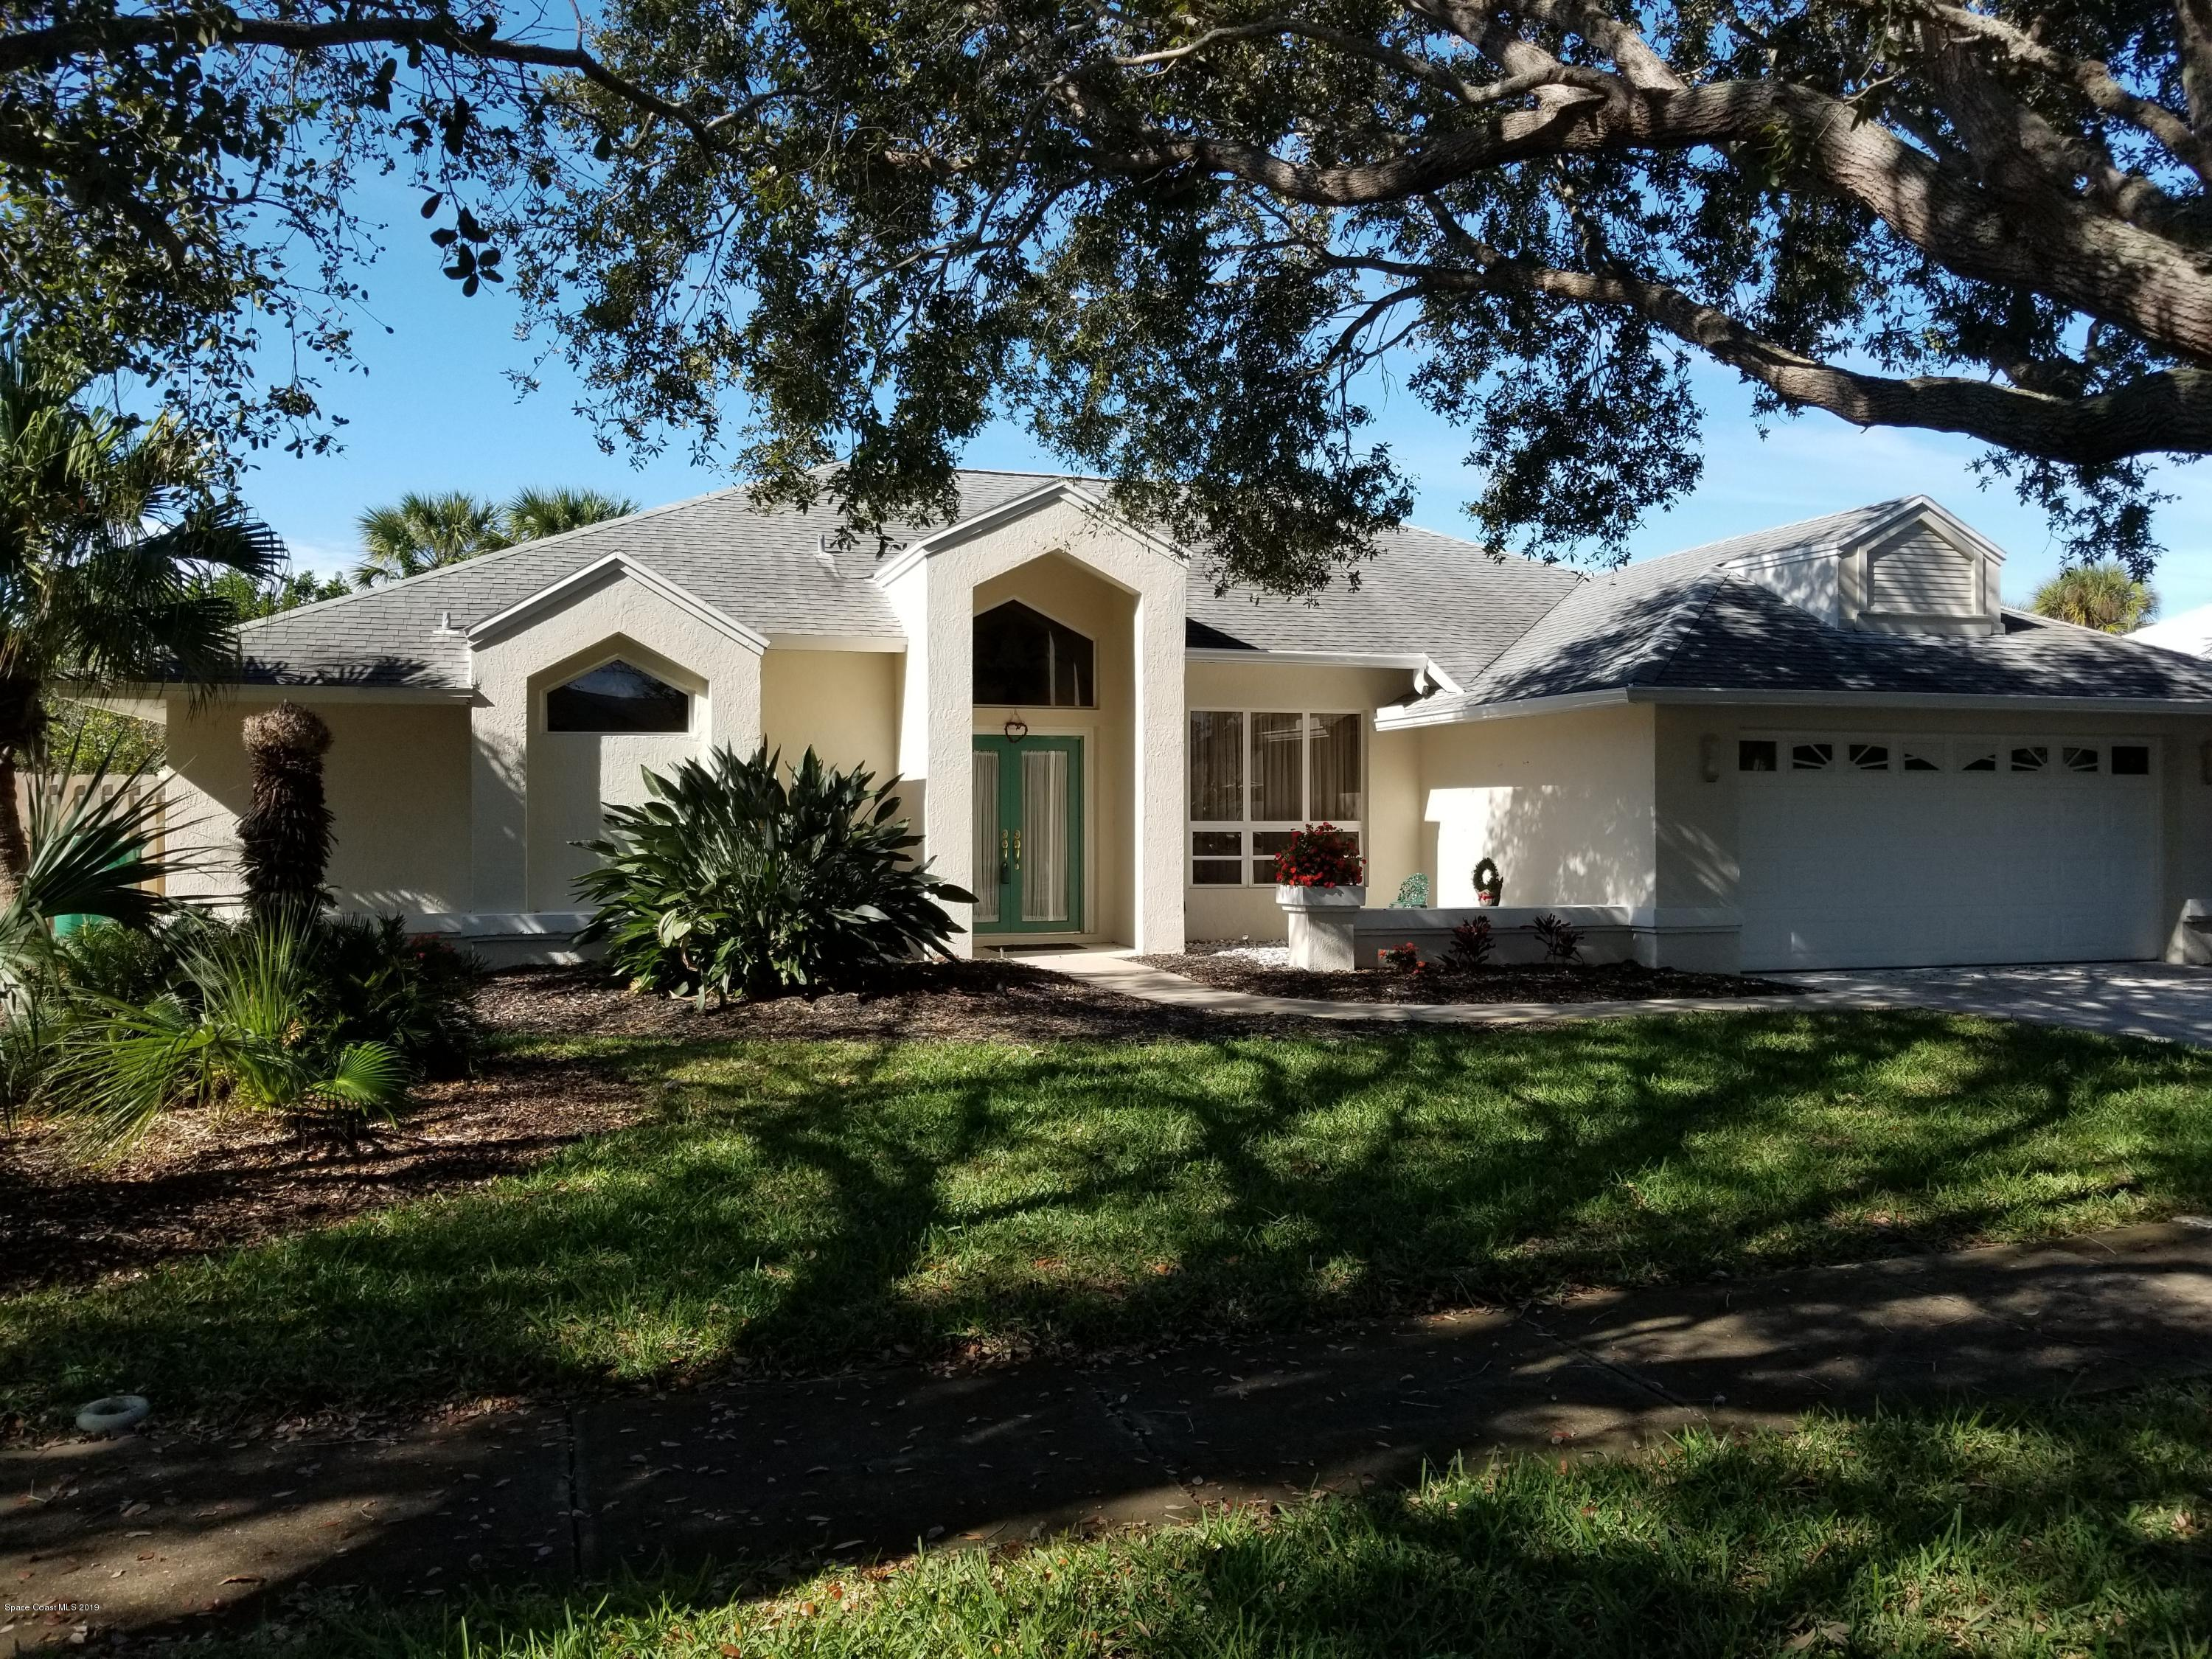 Single Family Home for Sale at 114 Tradewinds 114 Tradewinds Indialantic, Florida 32903 United States